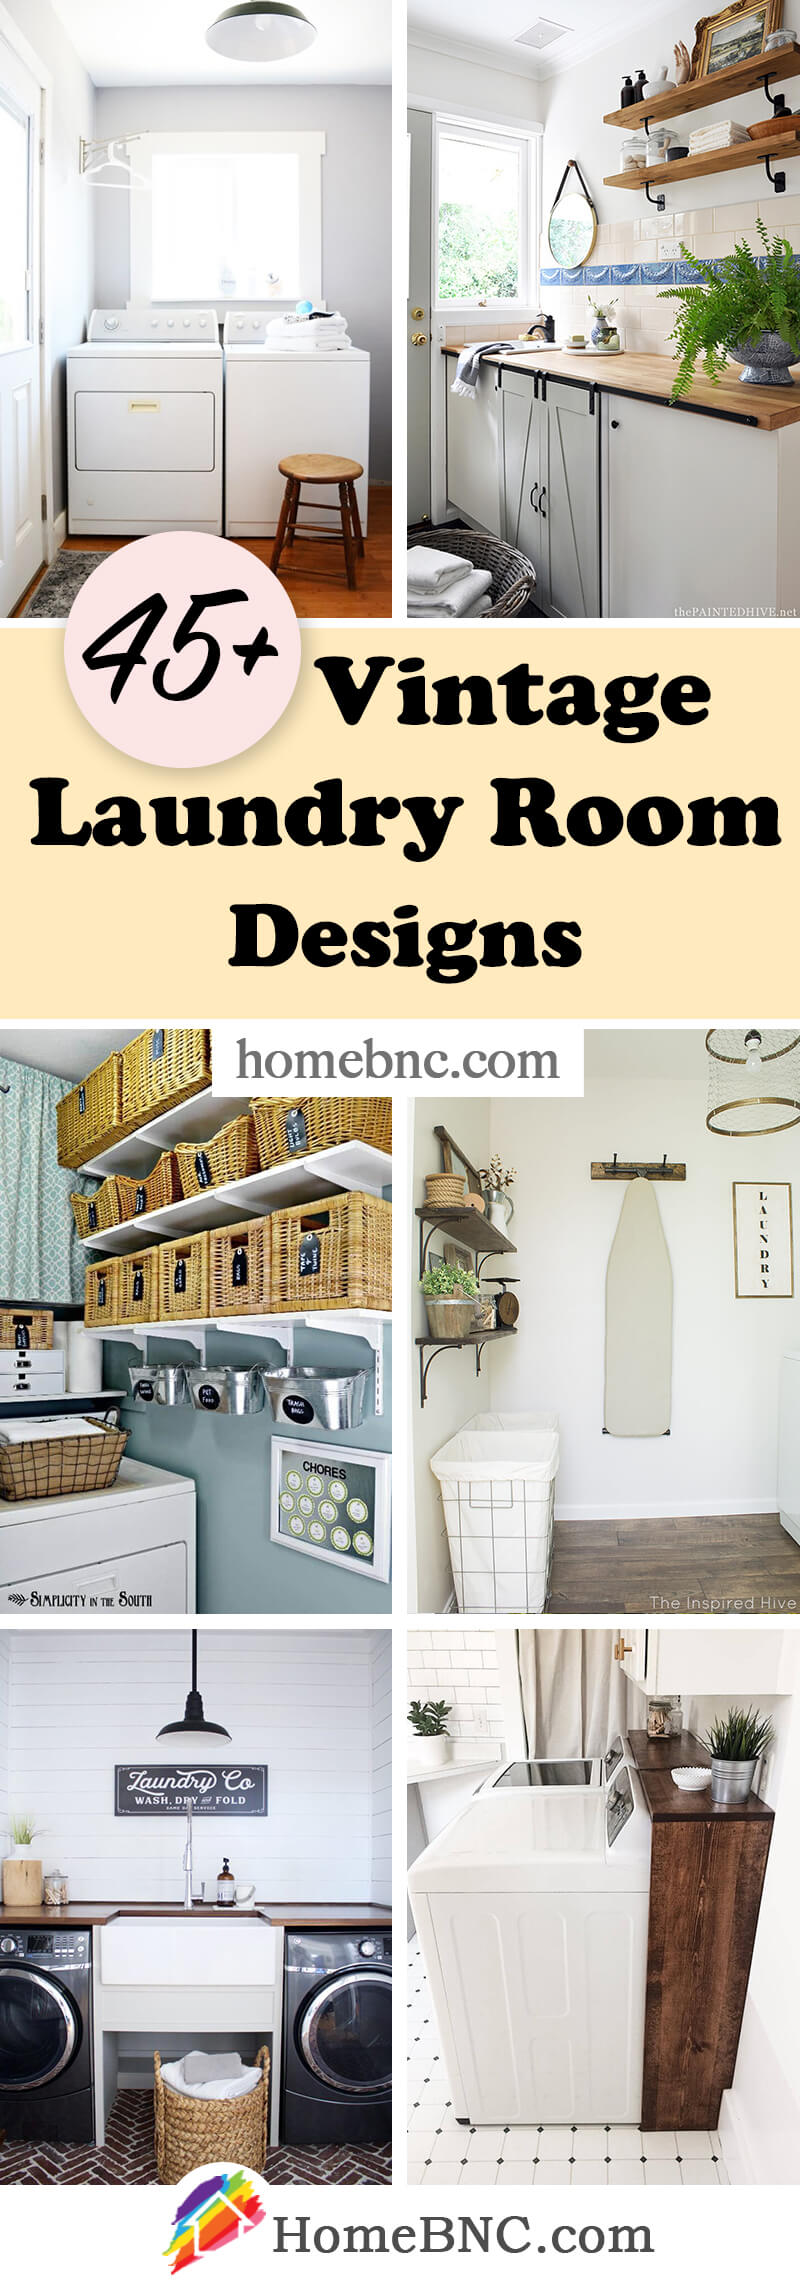 Vintage Laundry Room Designs